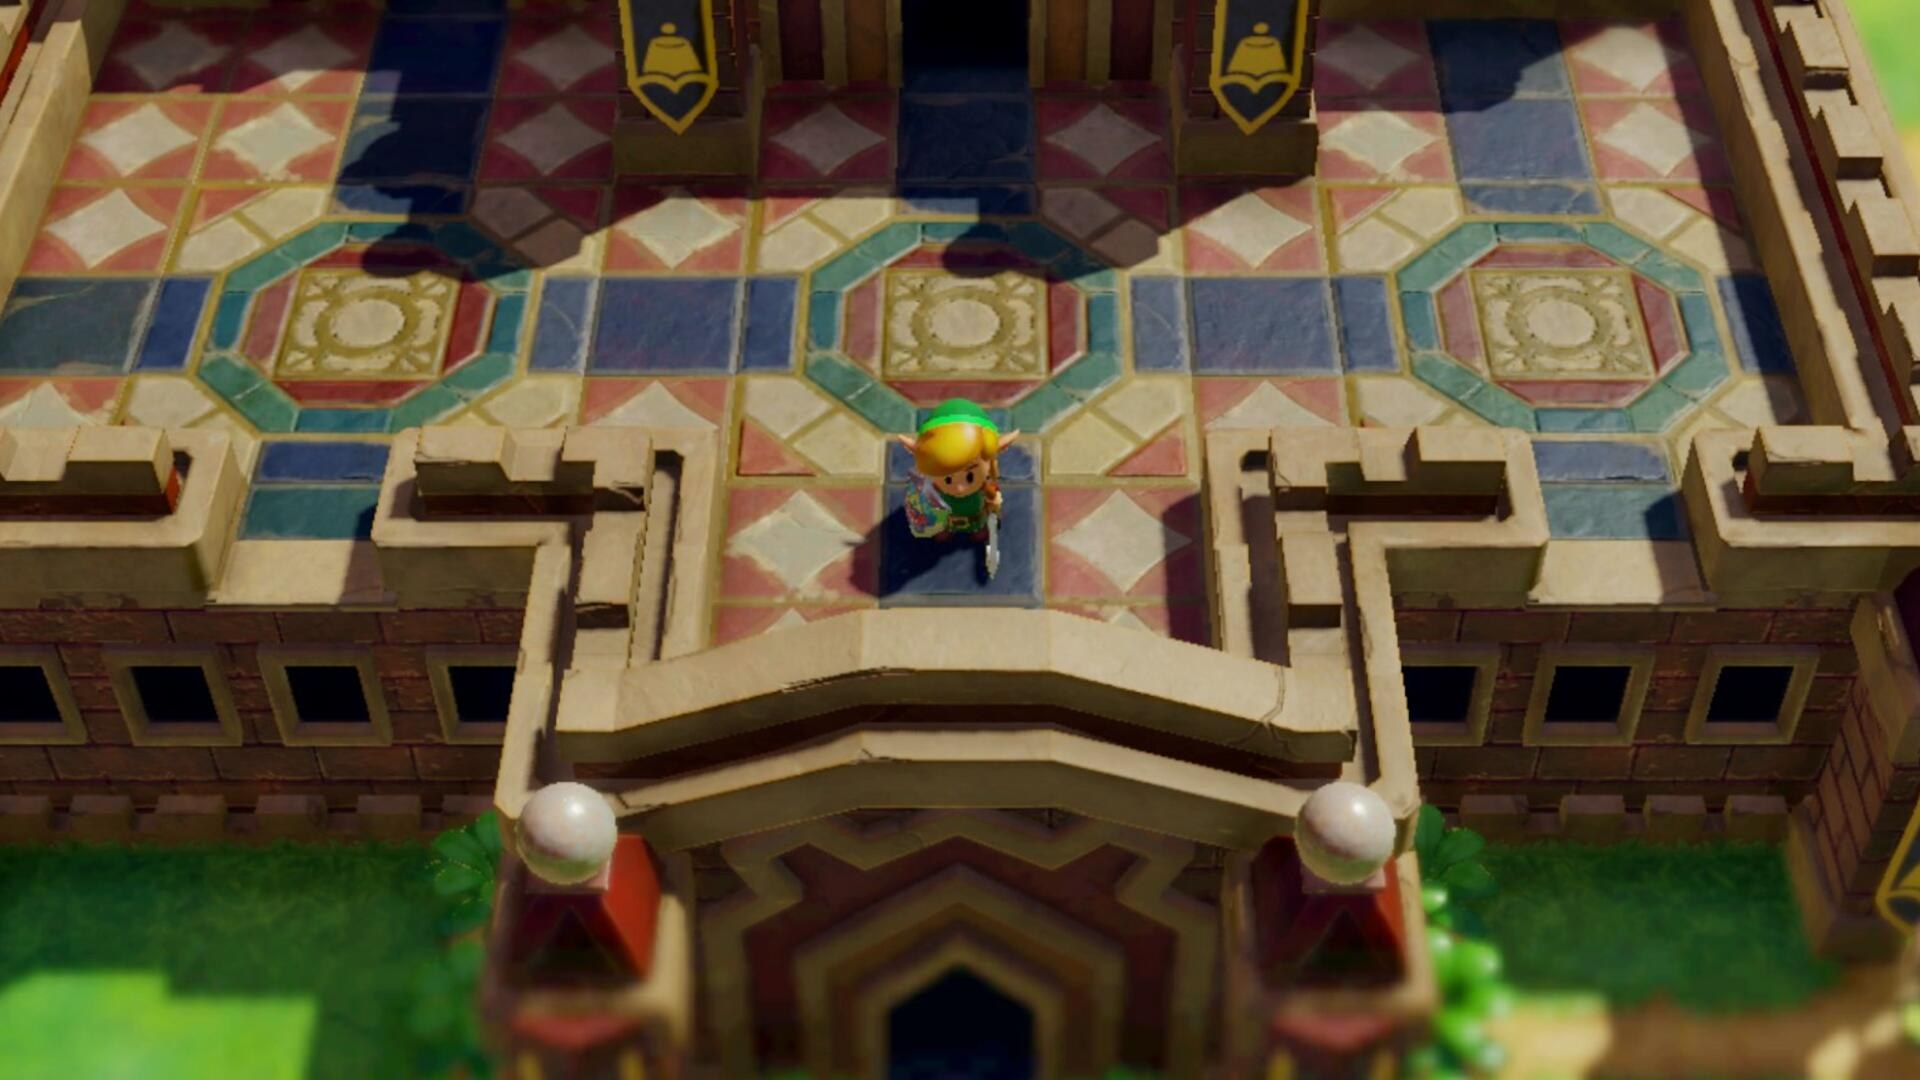 Zelda Link's Awakening Ket Castle - How to Use the Yoshi ... on icf castle plans, concrete castle plans, luxury castle plans, historic castle plans, castle home, modern day castle plans, castle under attack, minecraft castle plans, castle roof plans, castle for sales in us, adobe castle plans, castle town plans, castle building plans, castle mansion, castle design, castle tower plans, castle layout, medieval castle plans, castle school plans, small castle plans,